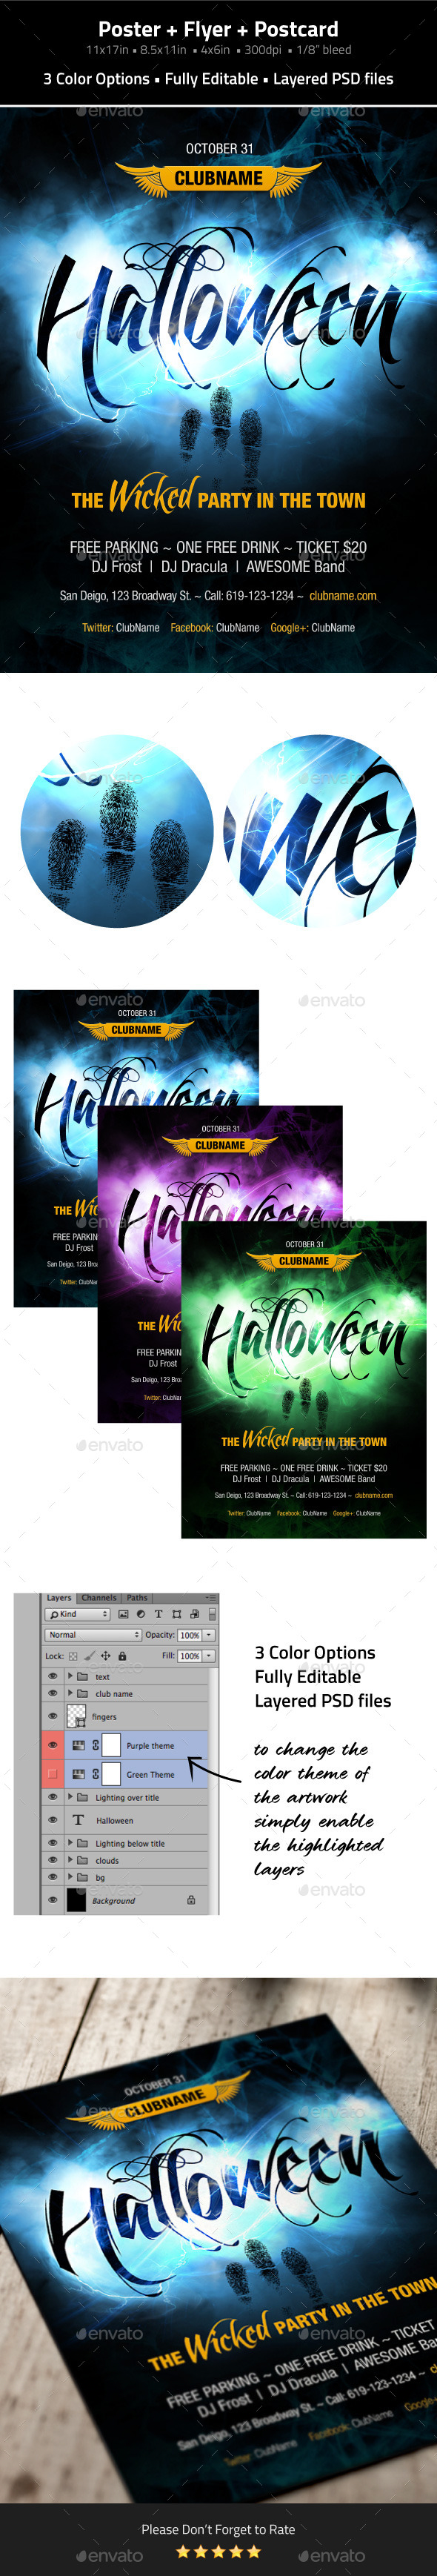 GraphicRiver Halloween Poster & Flyer & Postcard 8831716